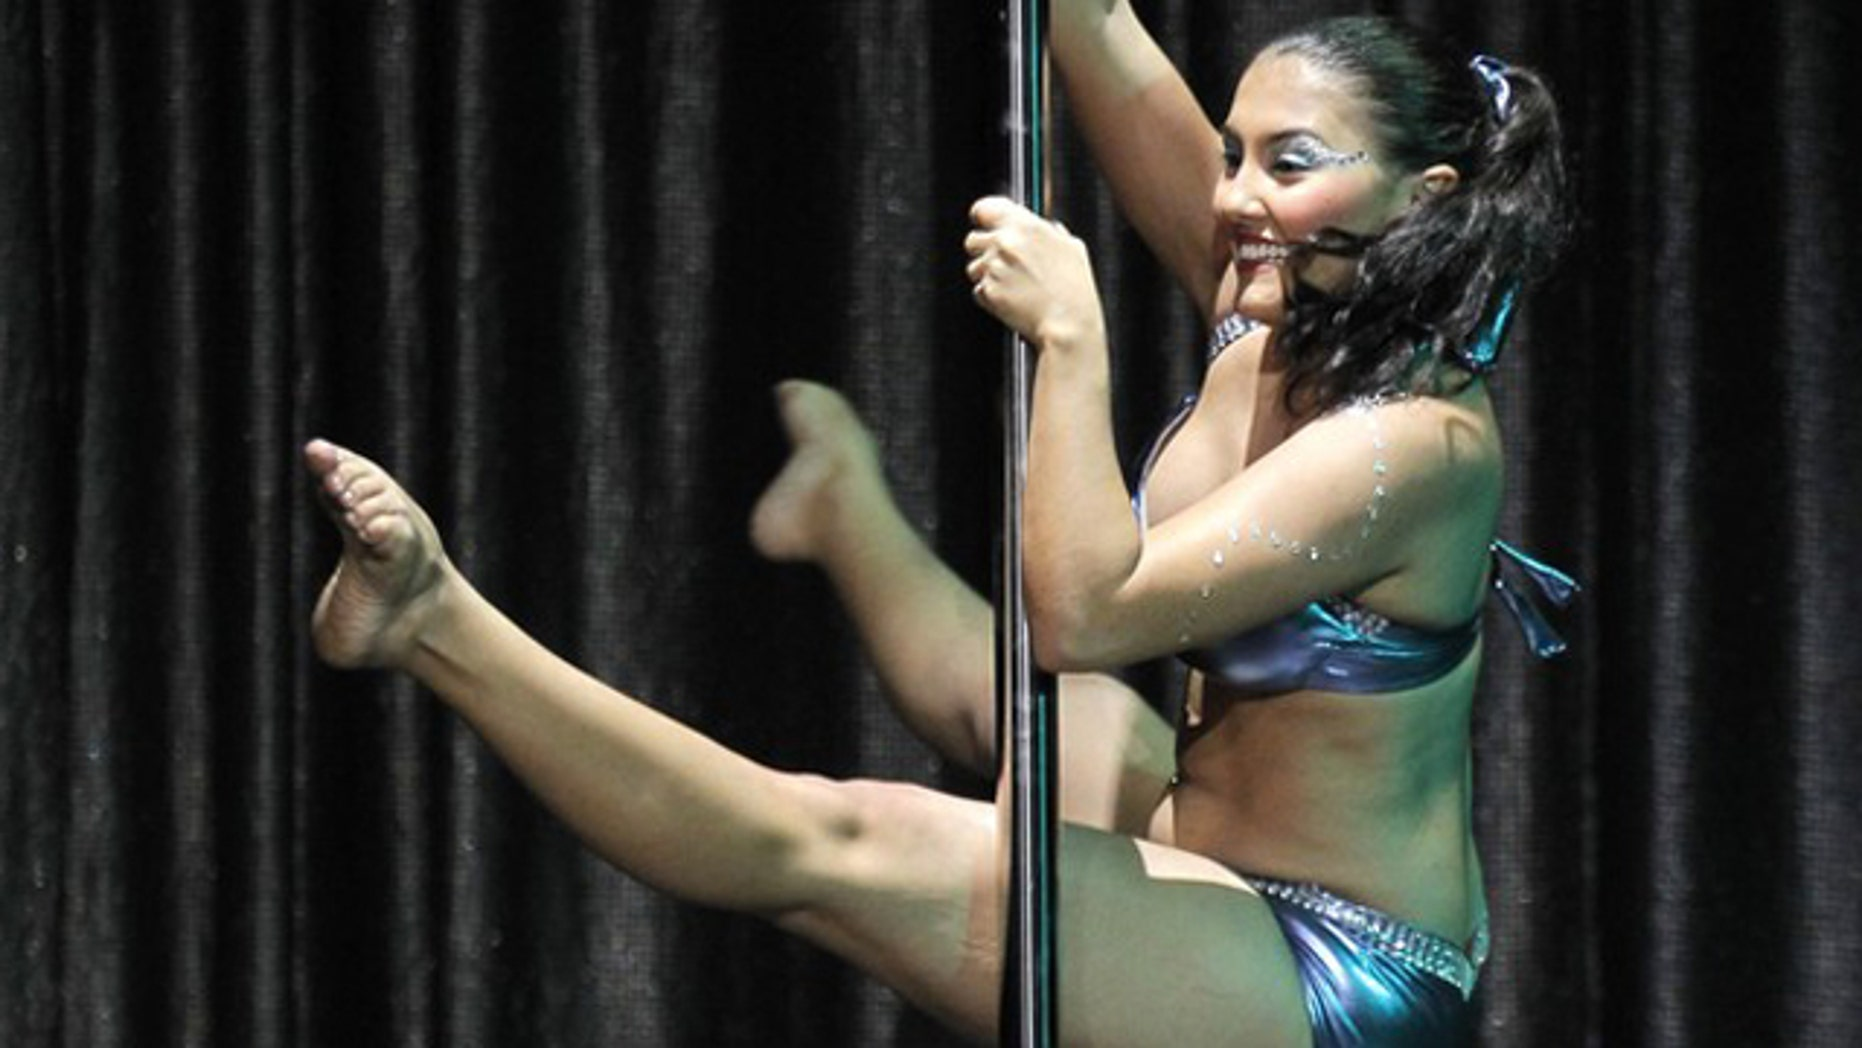 Nov. 6, 2010: Professional pole dancer Regina Mutai of Brazil performs her routine in the Miss Pole Dancing Argentina and Sudamerica 2010 competition in Buenos Aires.